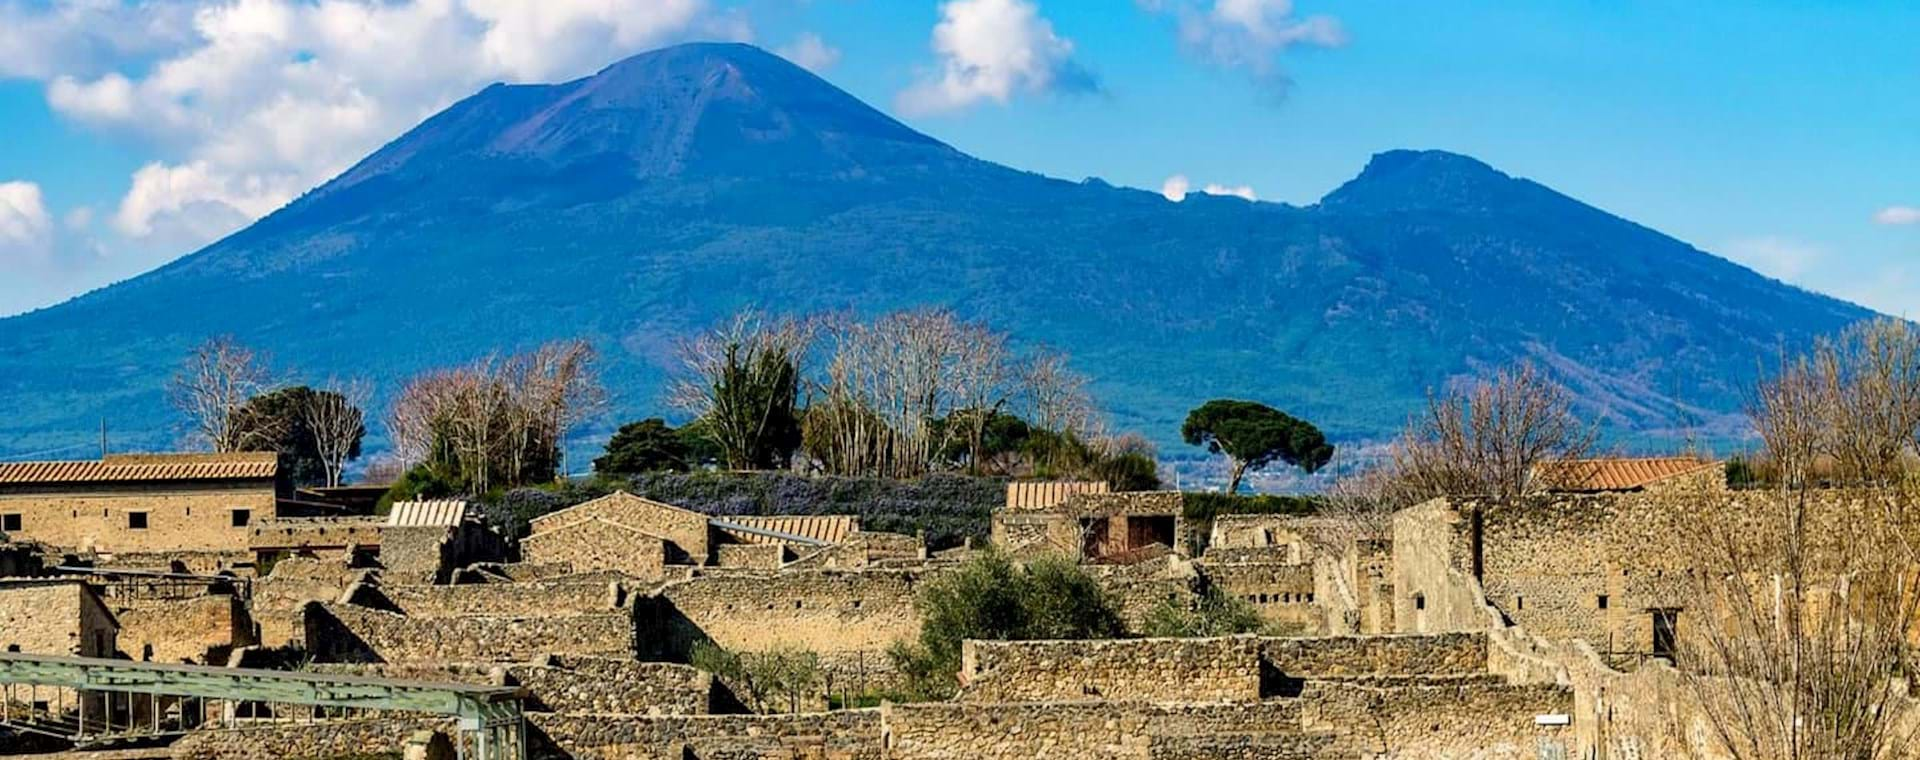 Pompeii Skip-the-Line Tickets & Round-Trip Transport from Rome